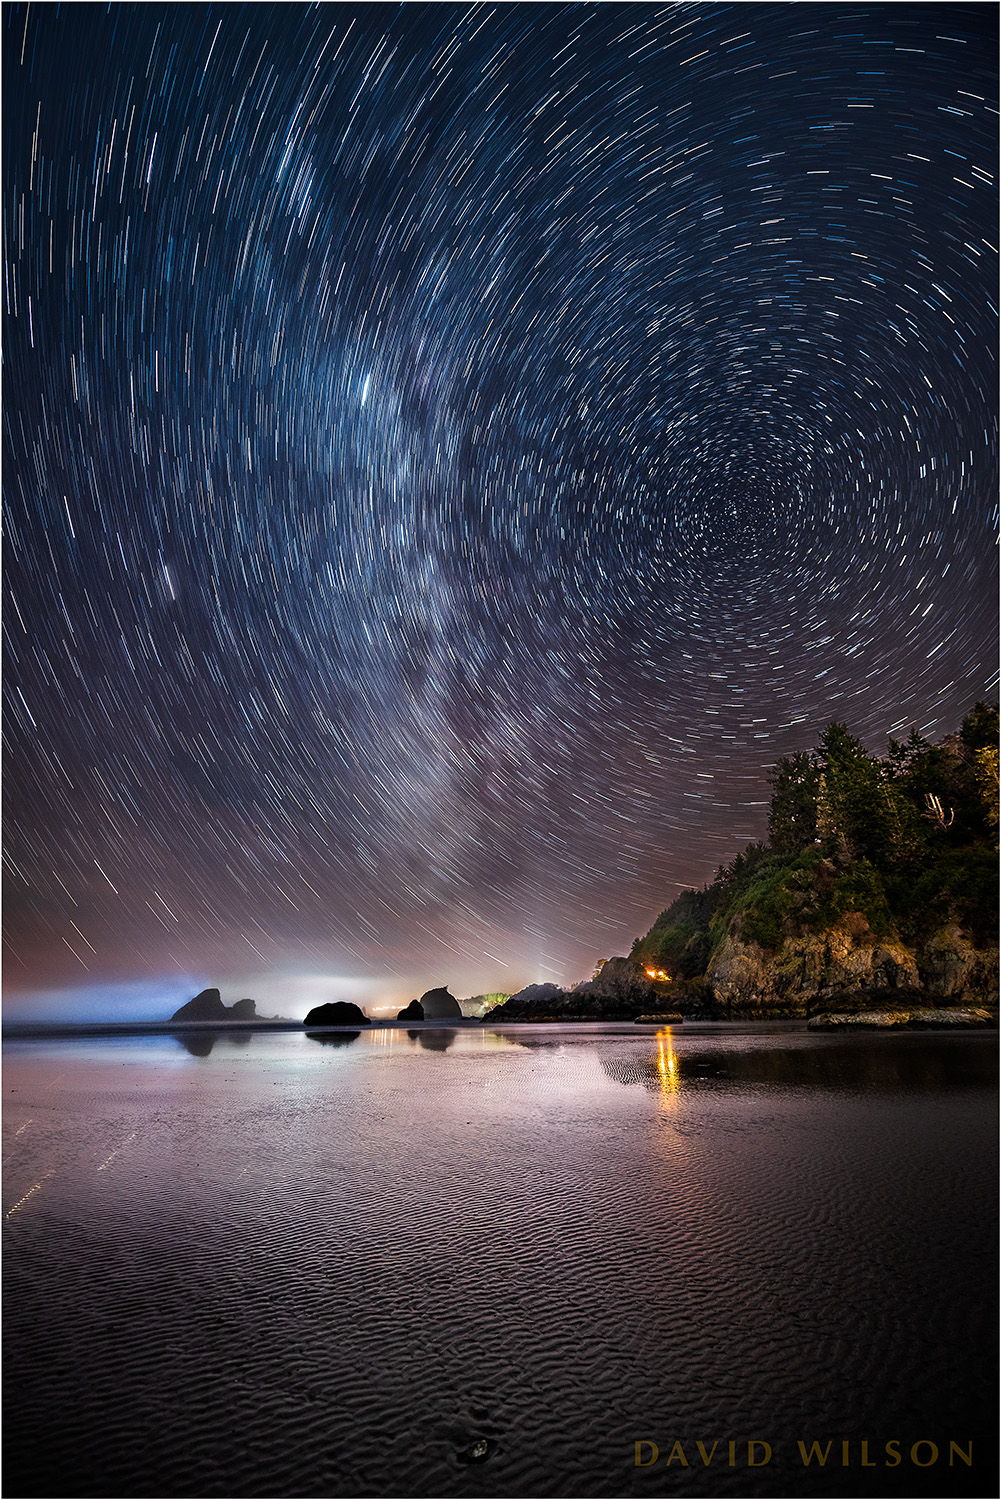 The stars wheel around the north star above the lights from the town of Trinidad. Photographed from Moonstone Beach, Humboldt County, California, this was a single 14-minute exposure.